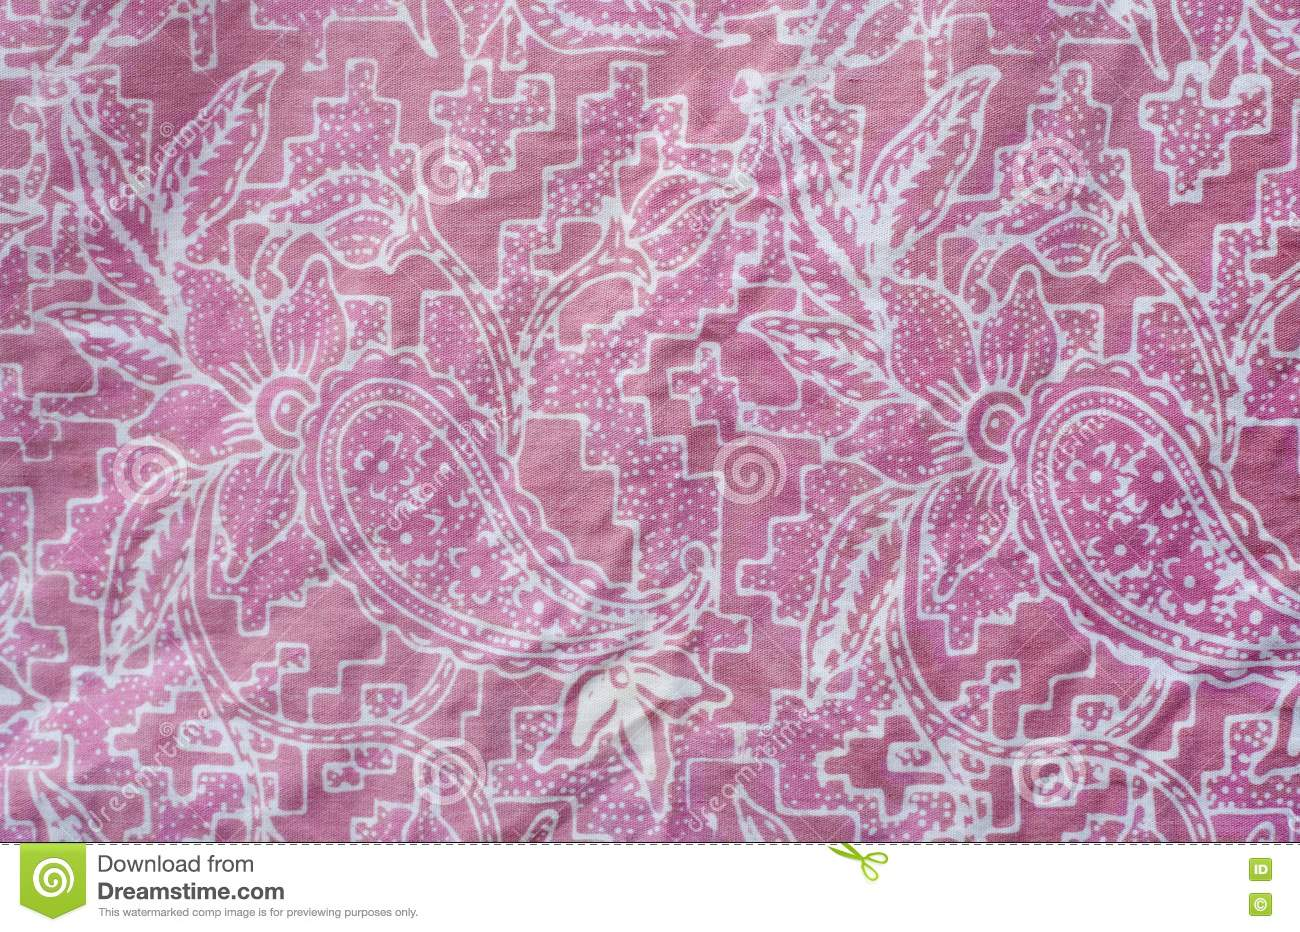 Royalty Free Stock Photos: Batik design in Thailand